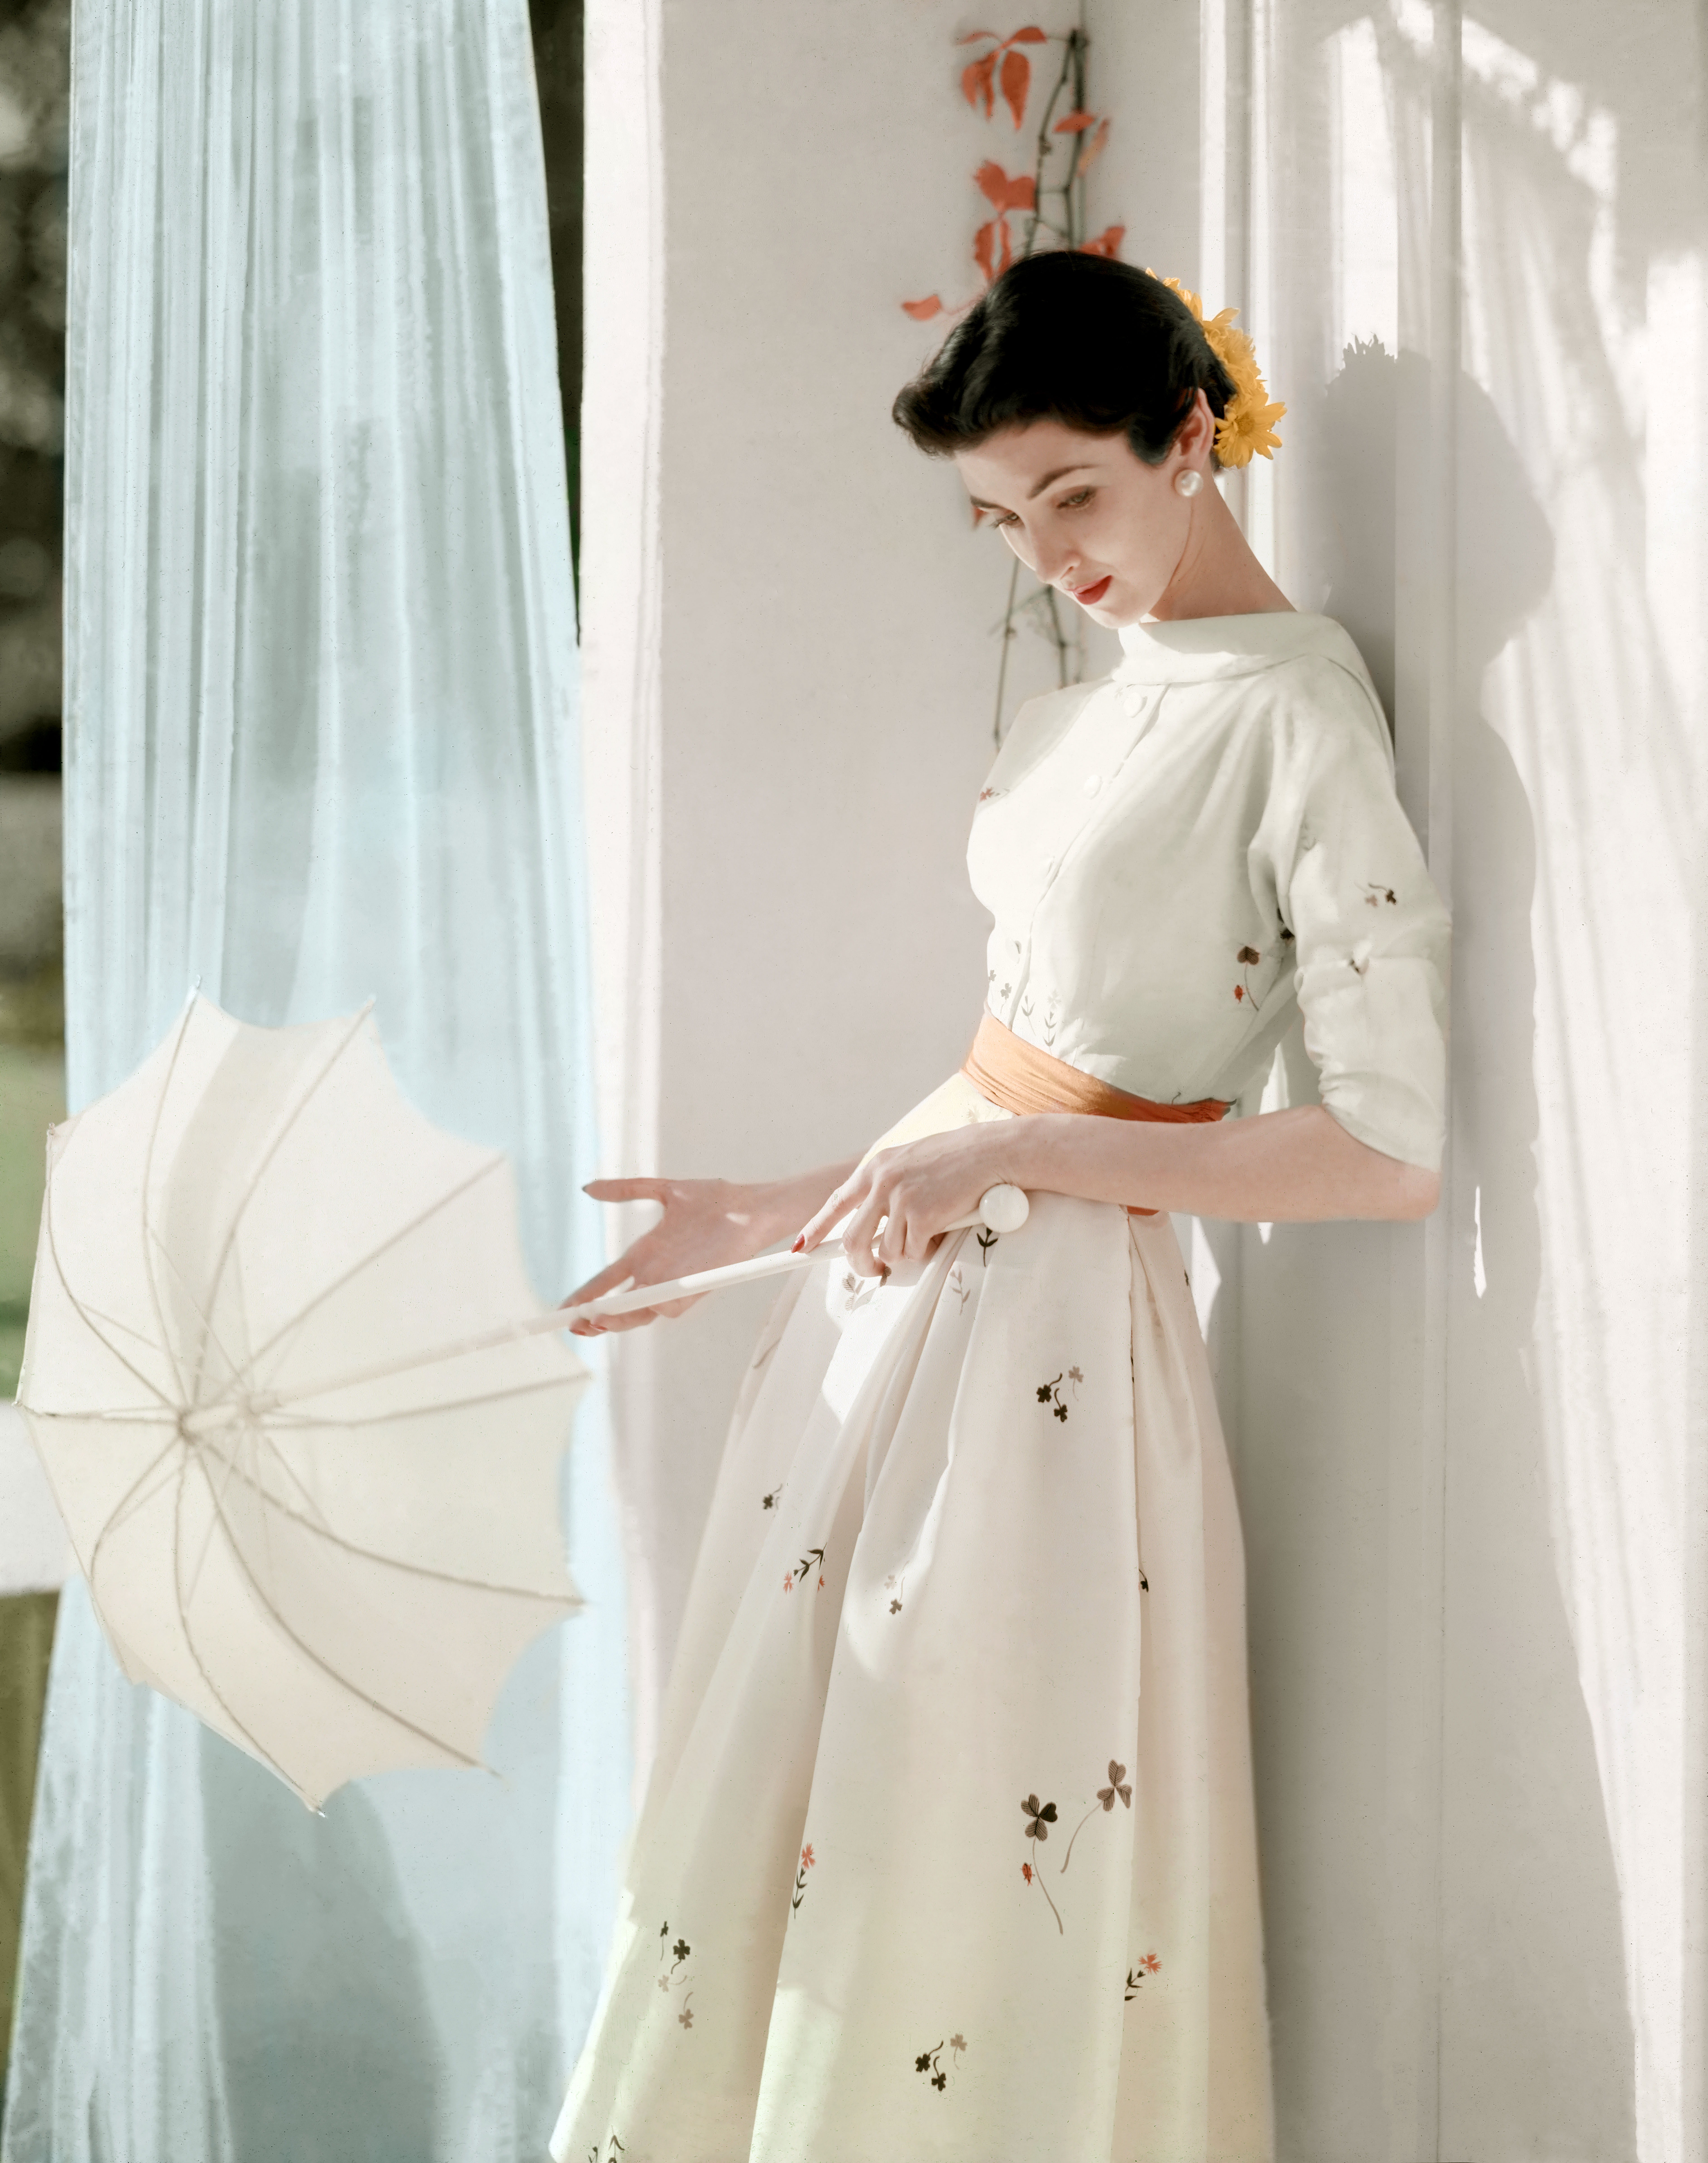 This image shot by Horst in 1953 is a wonderful example of his stunning work in color. Shot on large format 10x8 film, the photograph is elegant and beautiful.